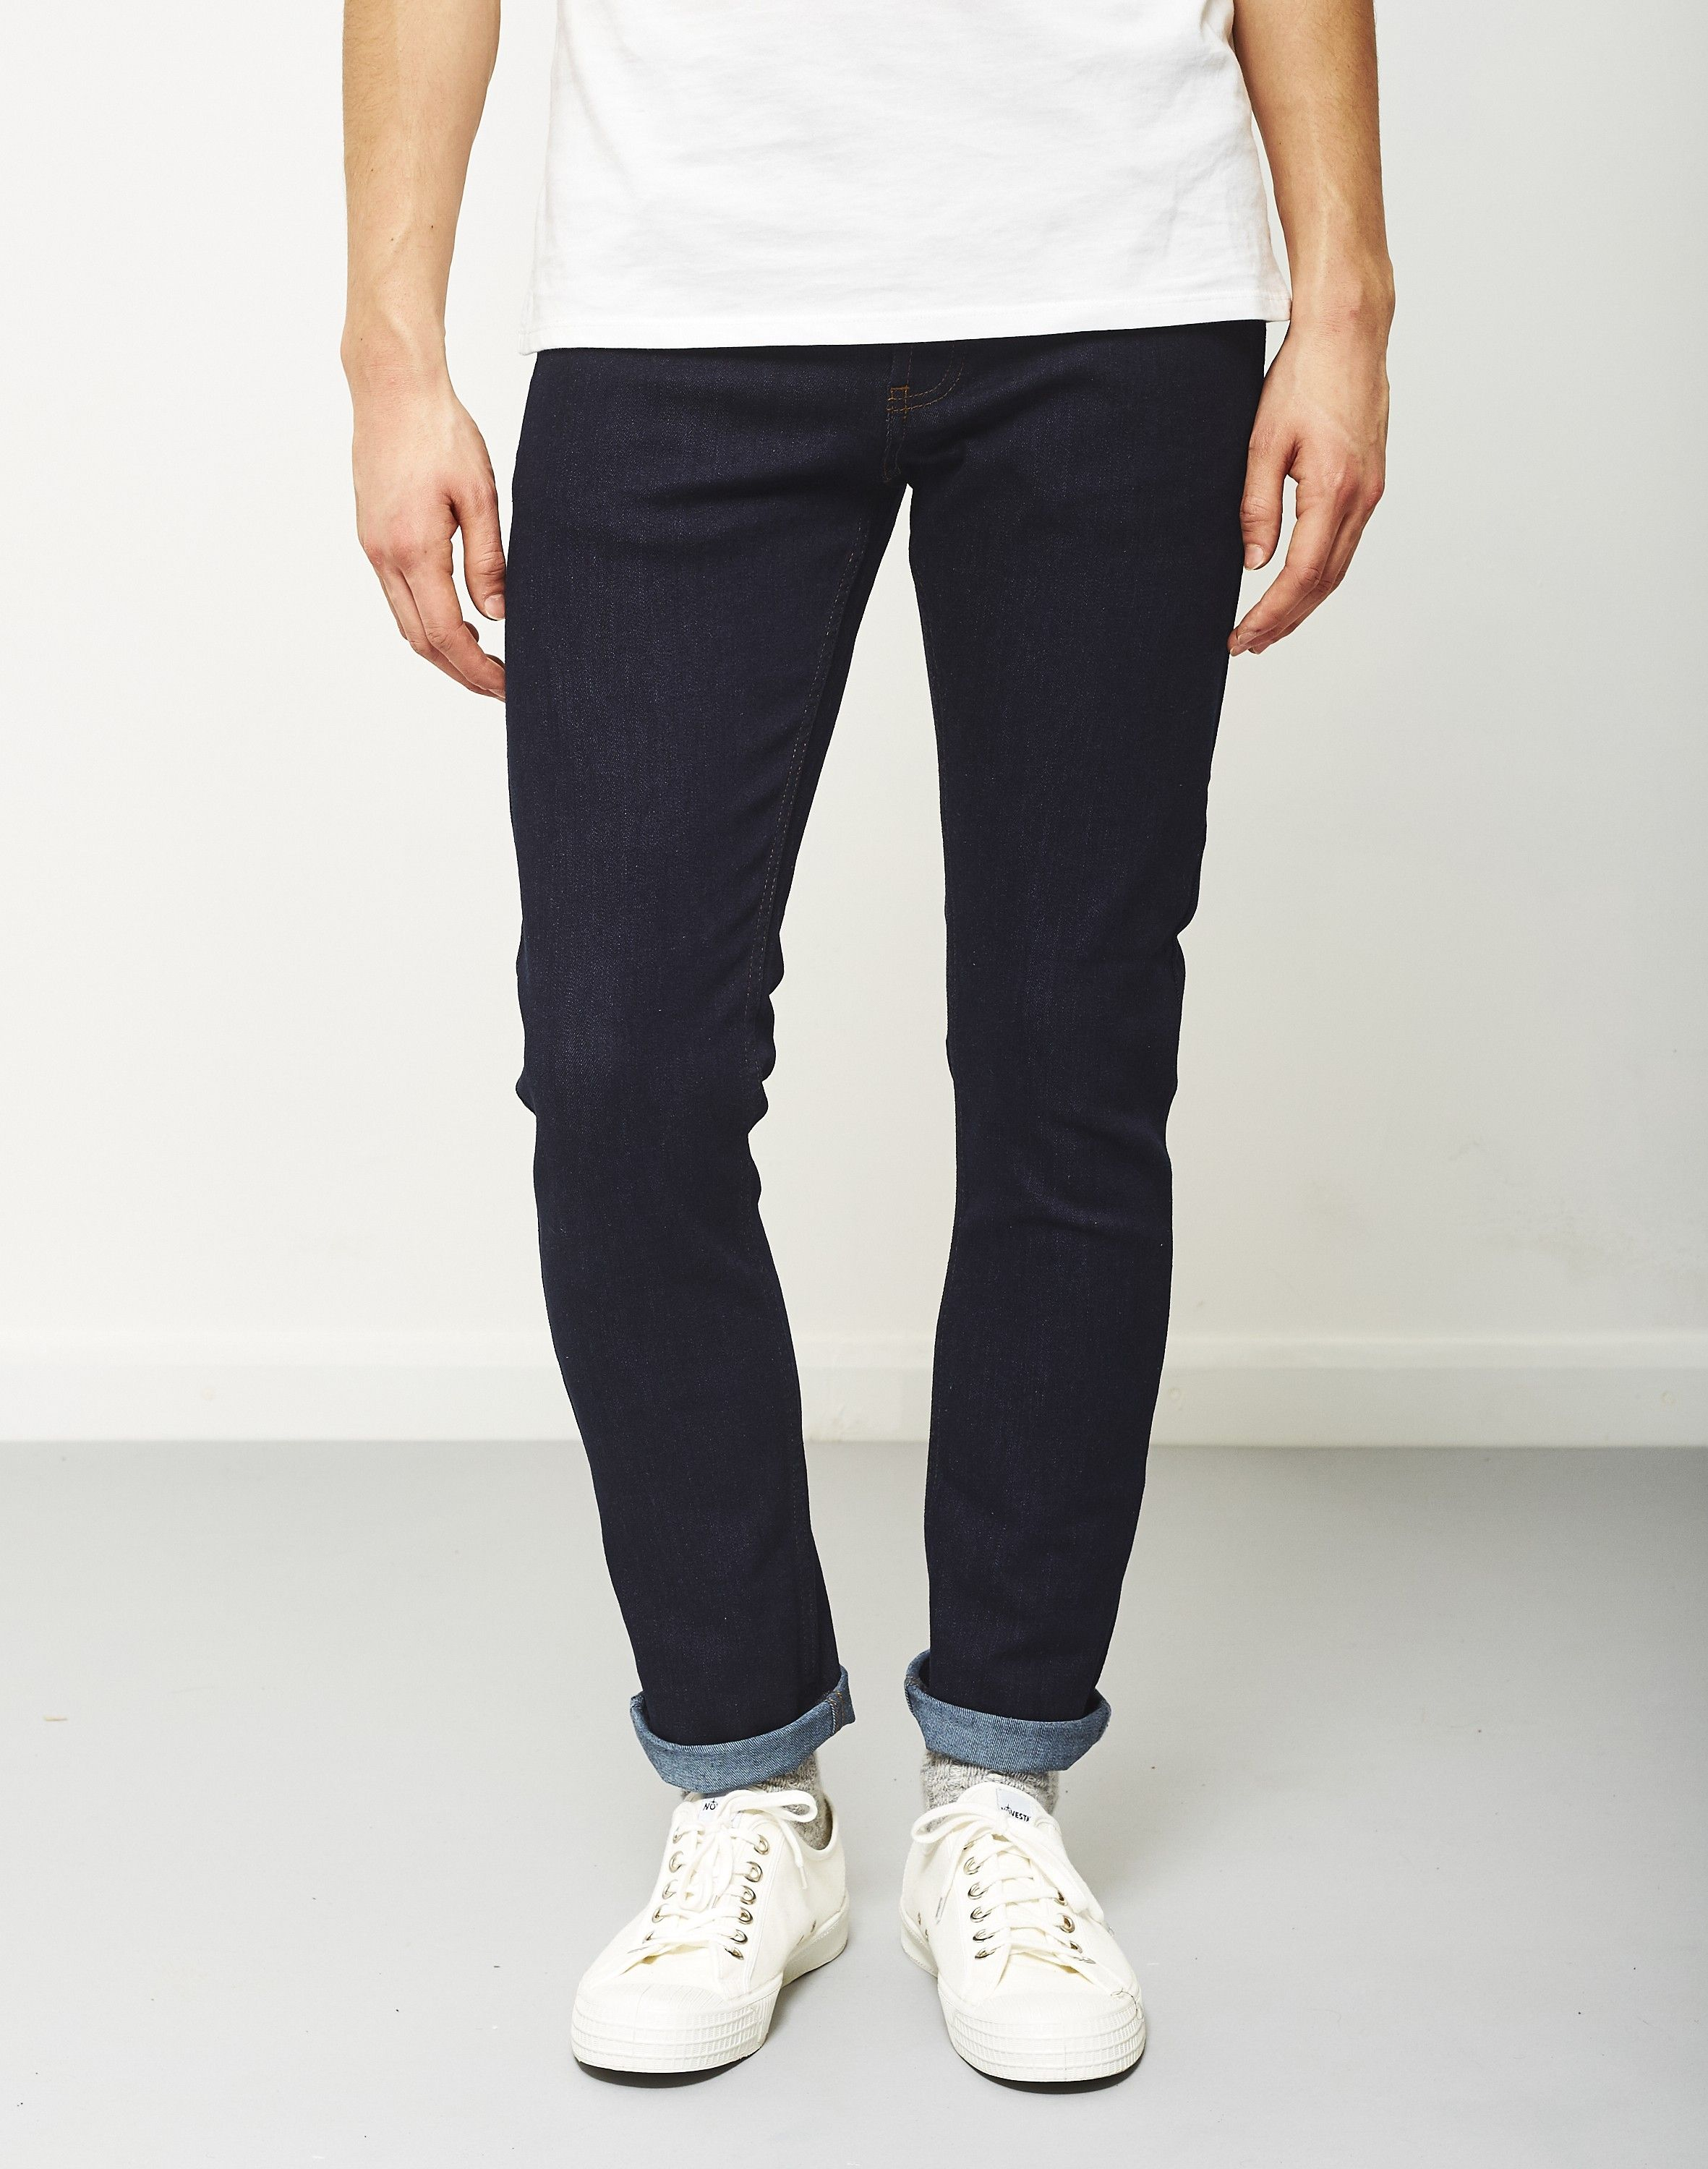 eac67a0014c The Idle Man Slim Fit Jeans Rinse Wash Raw